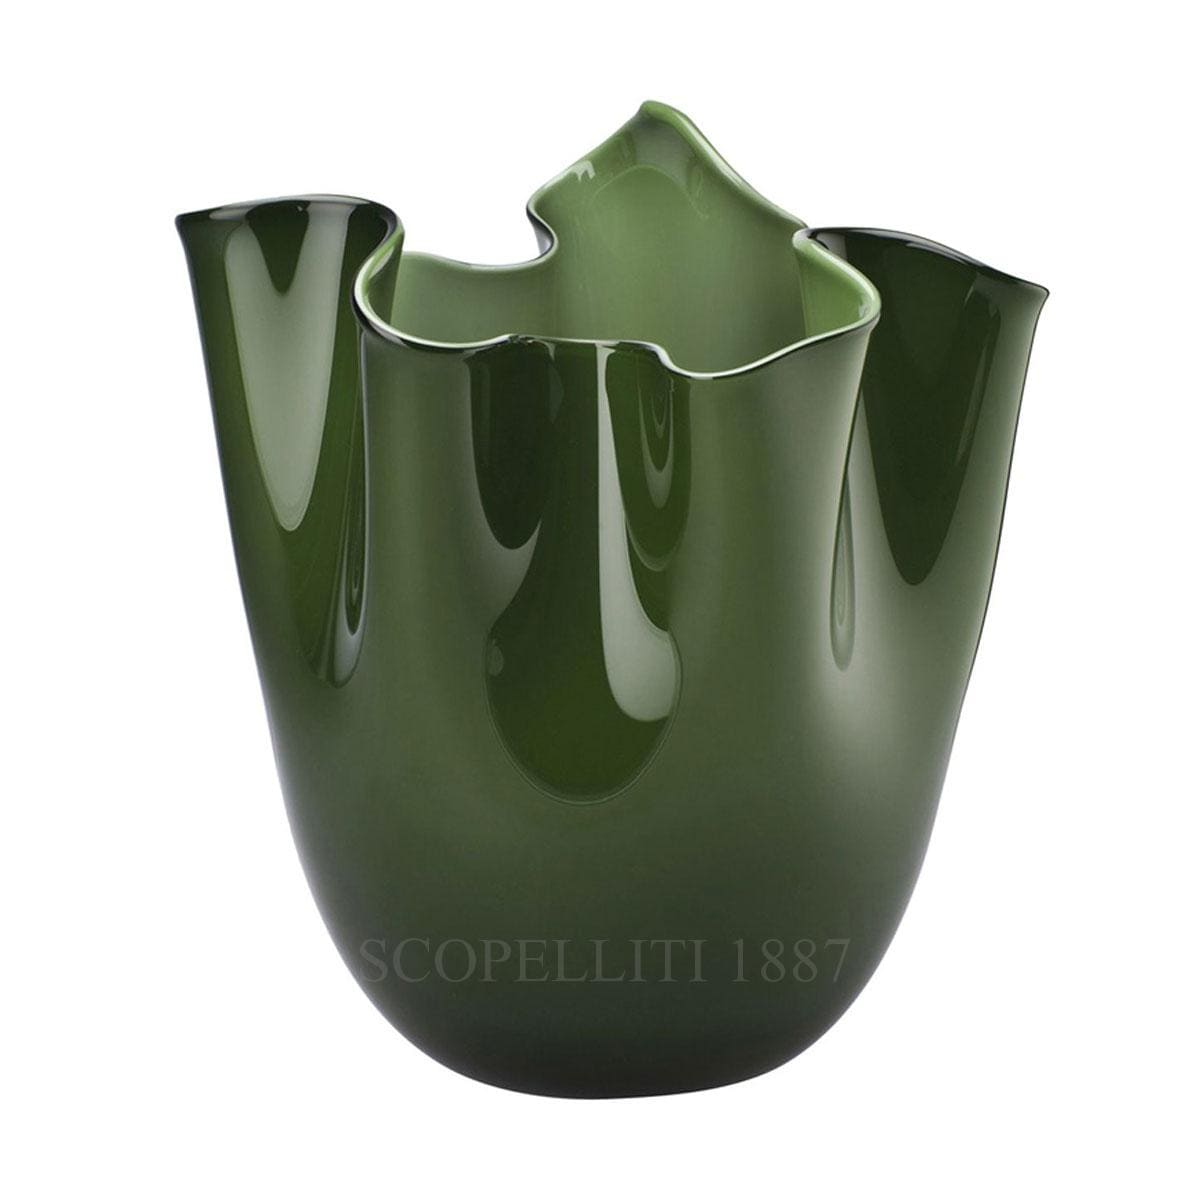 venini fazzoletto green vase murano glass